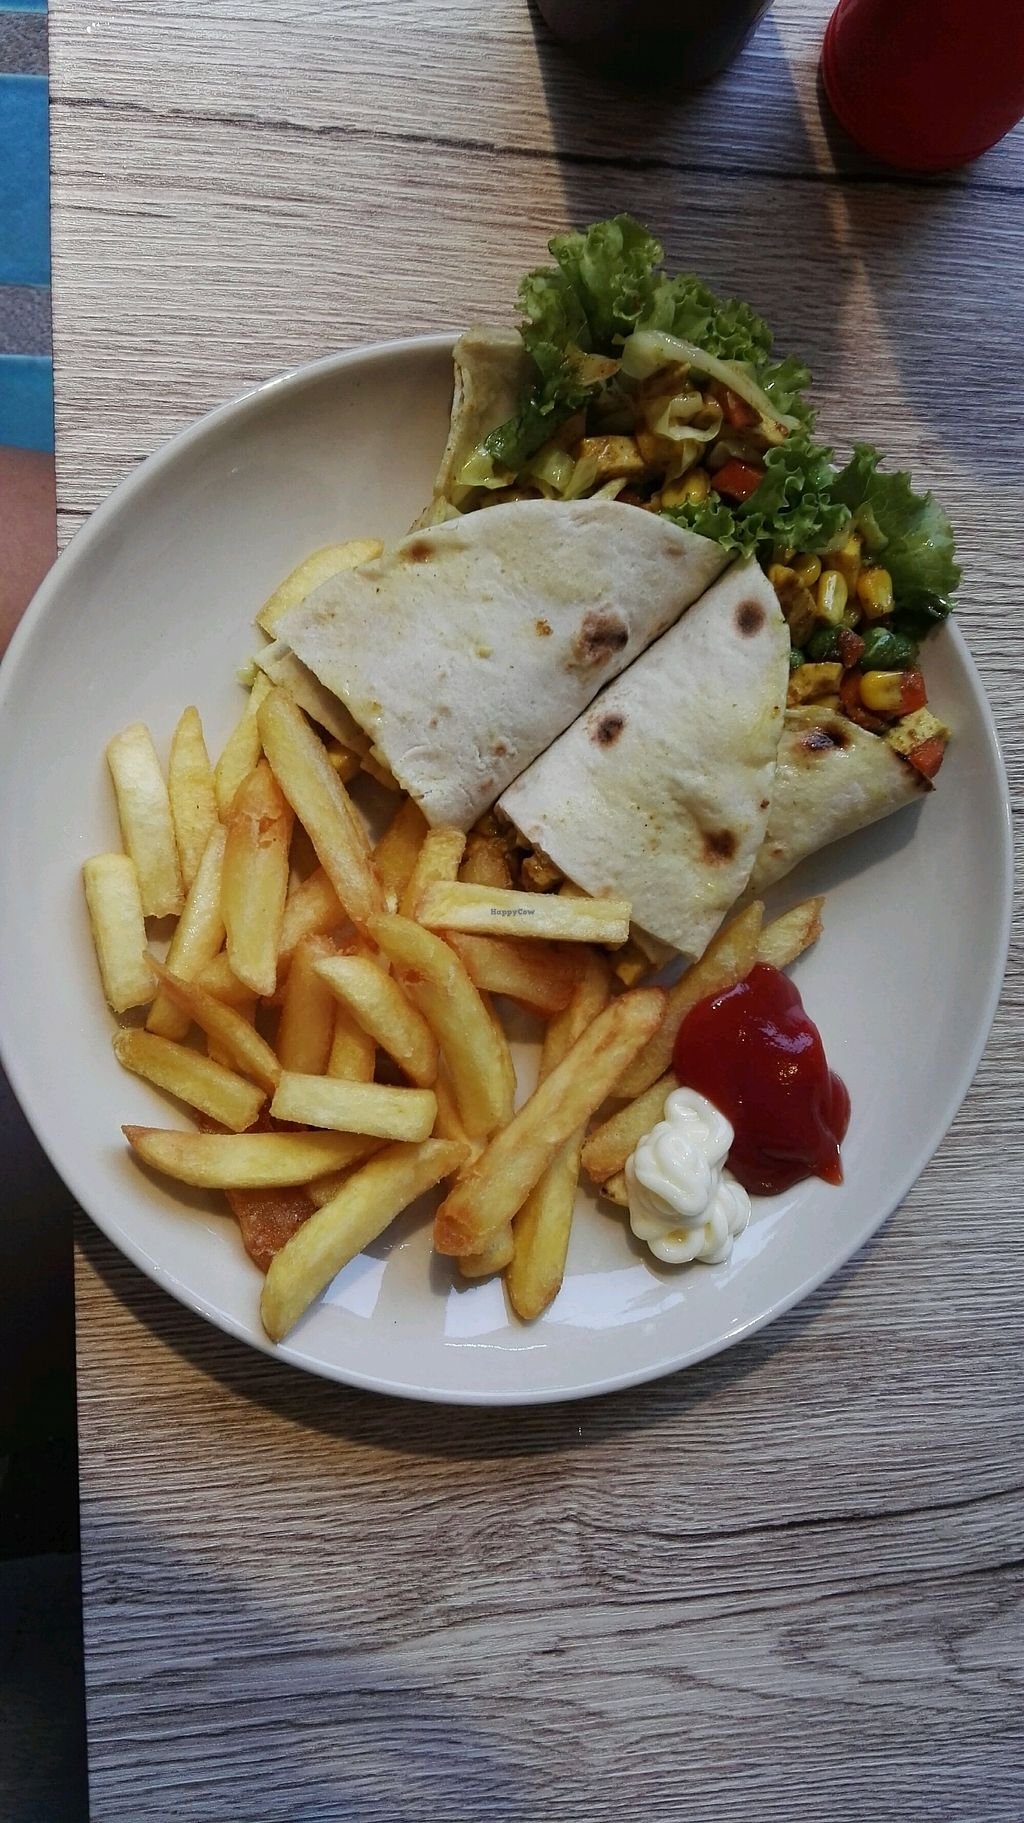 """Photo of Dow Vegetarian Restaurant  by <a href=""""/members/profile/AnnaSofie"""">AnnaSofie</a> <br/>Tofu Wrap <br/> August 25, 2017  - <a href='/contact/abuse/image/96395/296902'>Report</a>"""